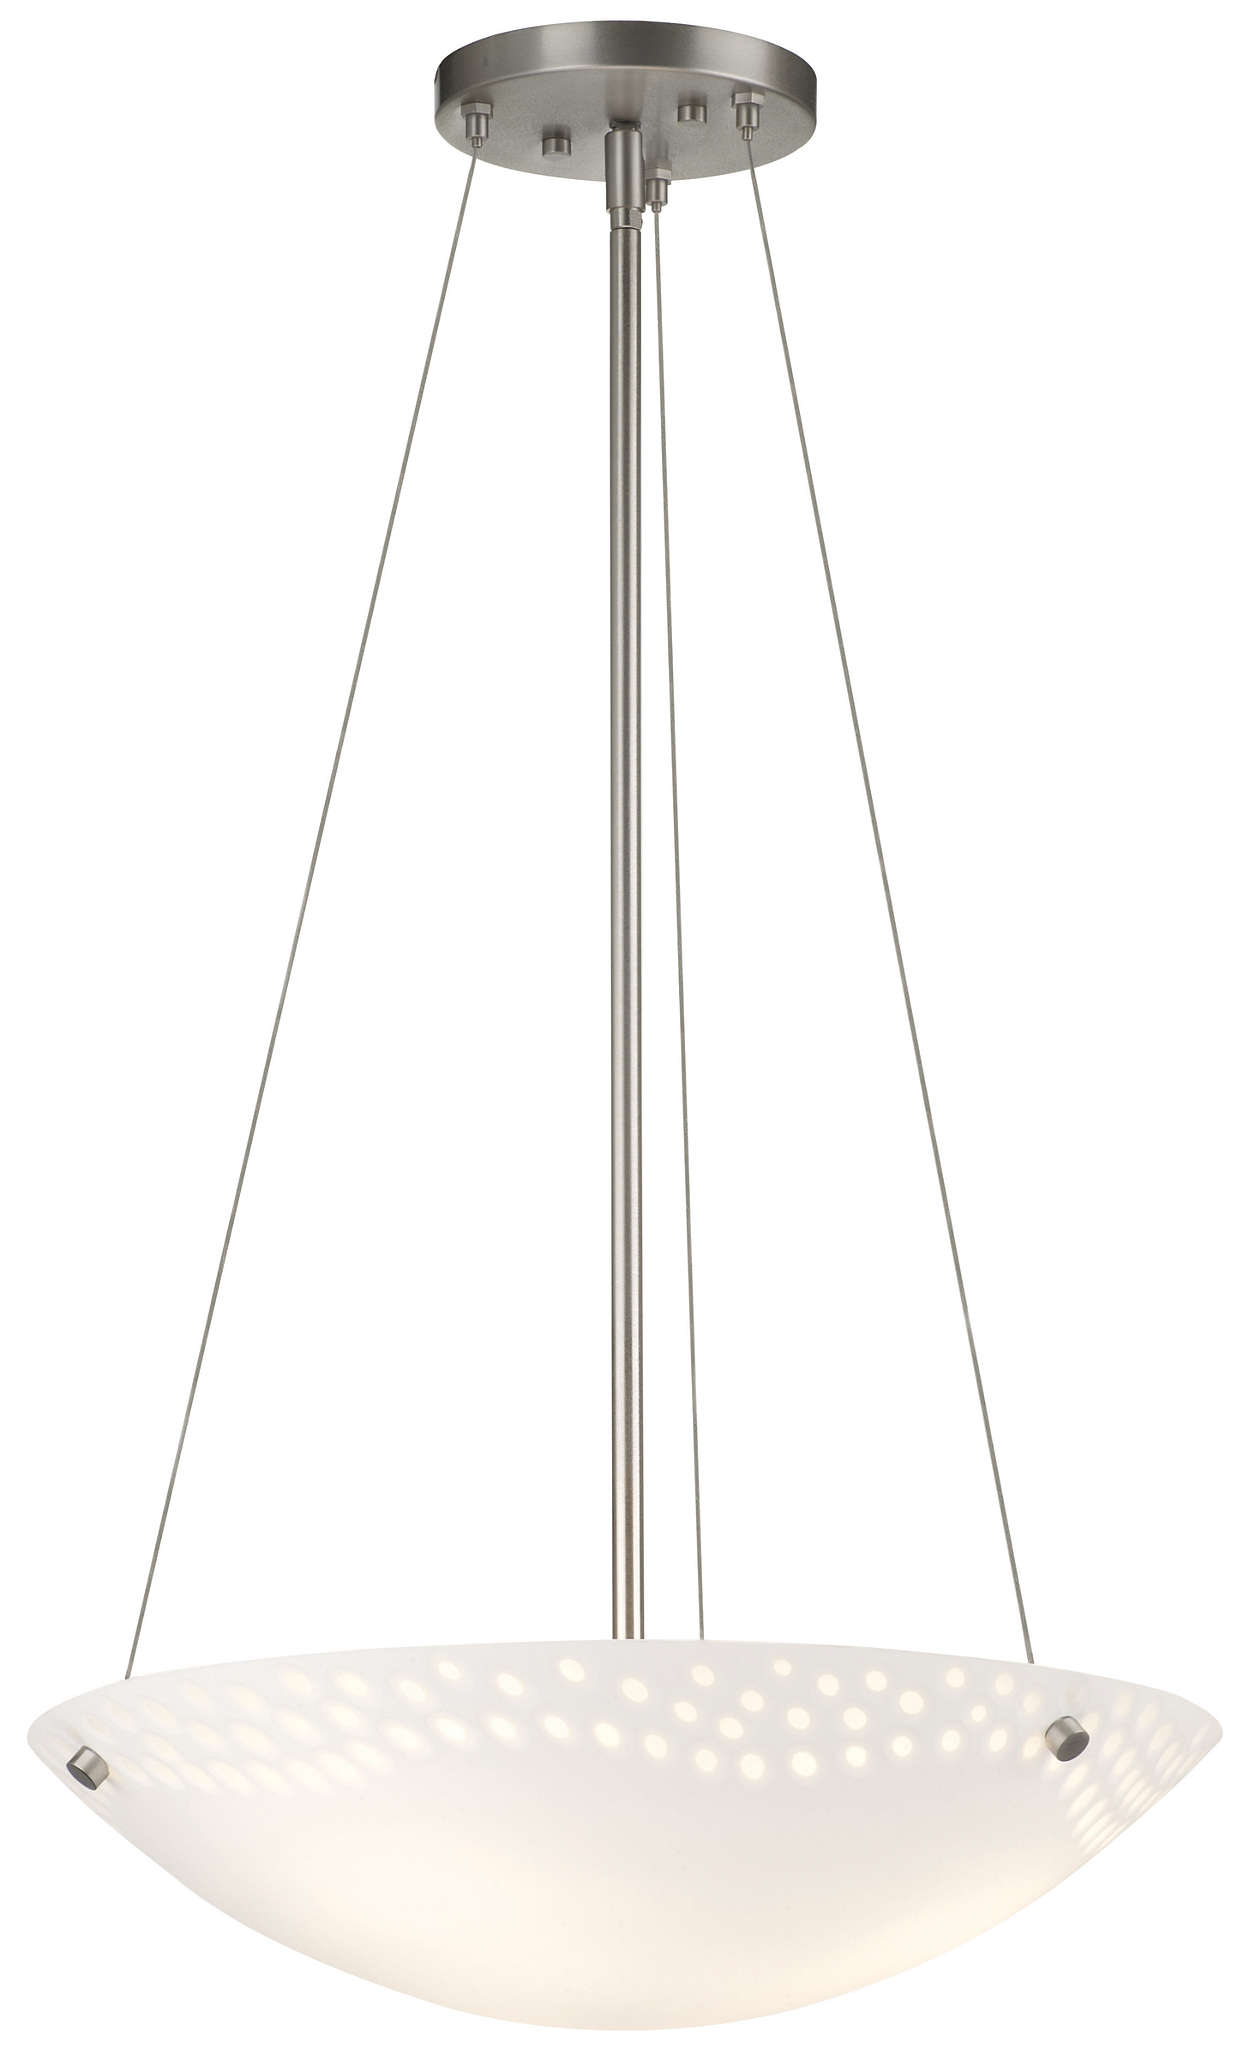 Daybreak 3-light Pendant in Satin Nickel finish